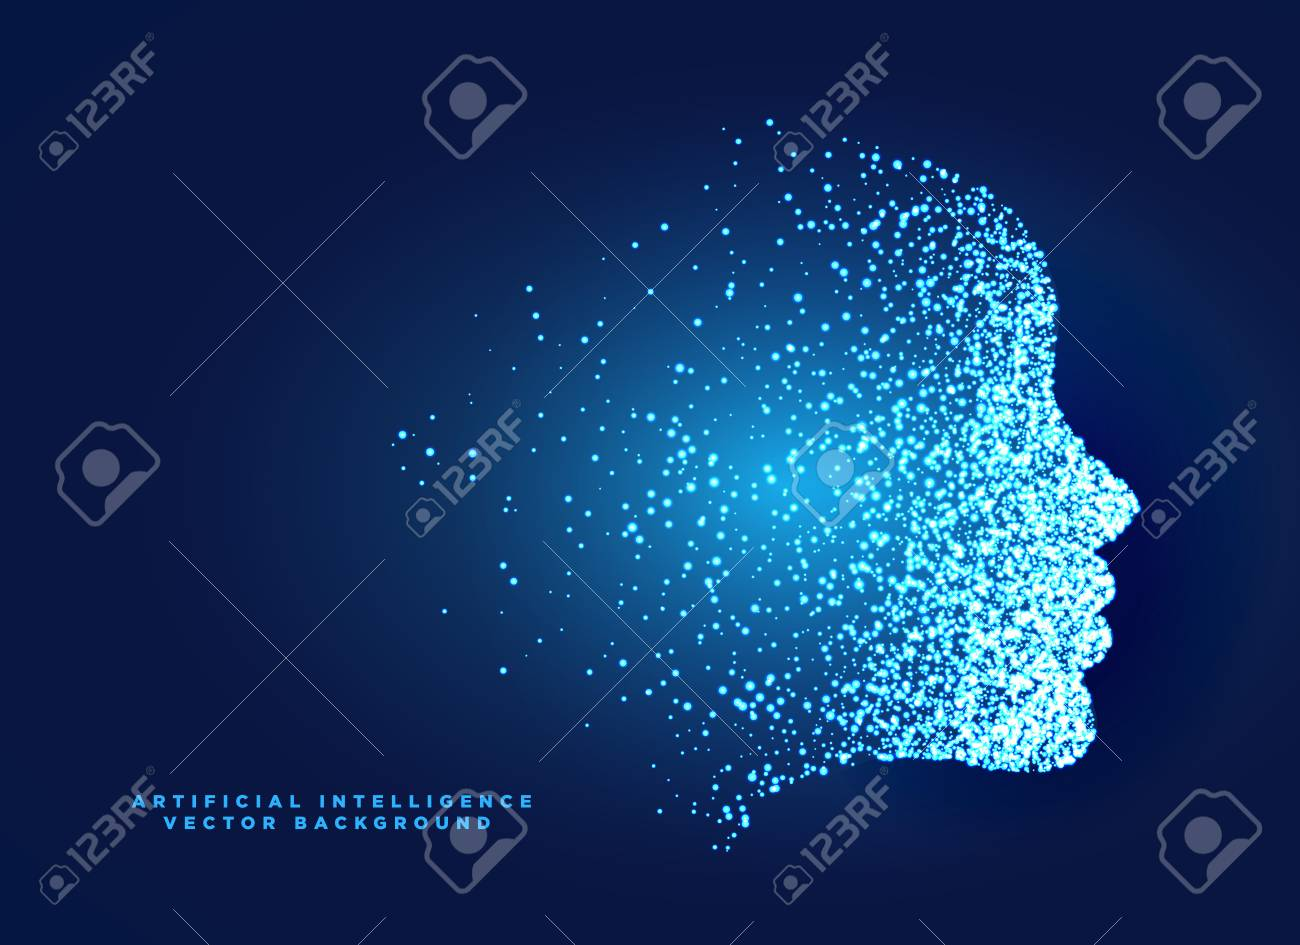 particle digital face concept design for artificial intelligent and machine learning - 96952105